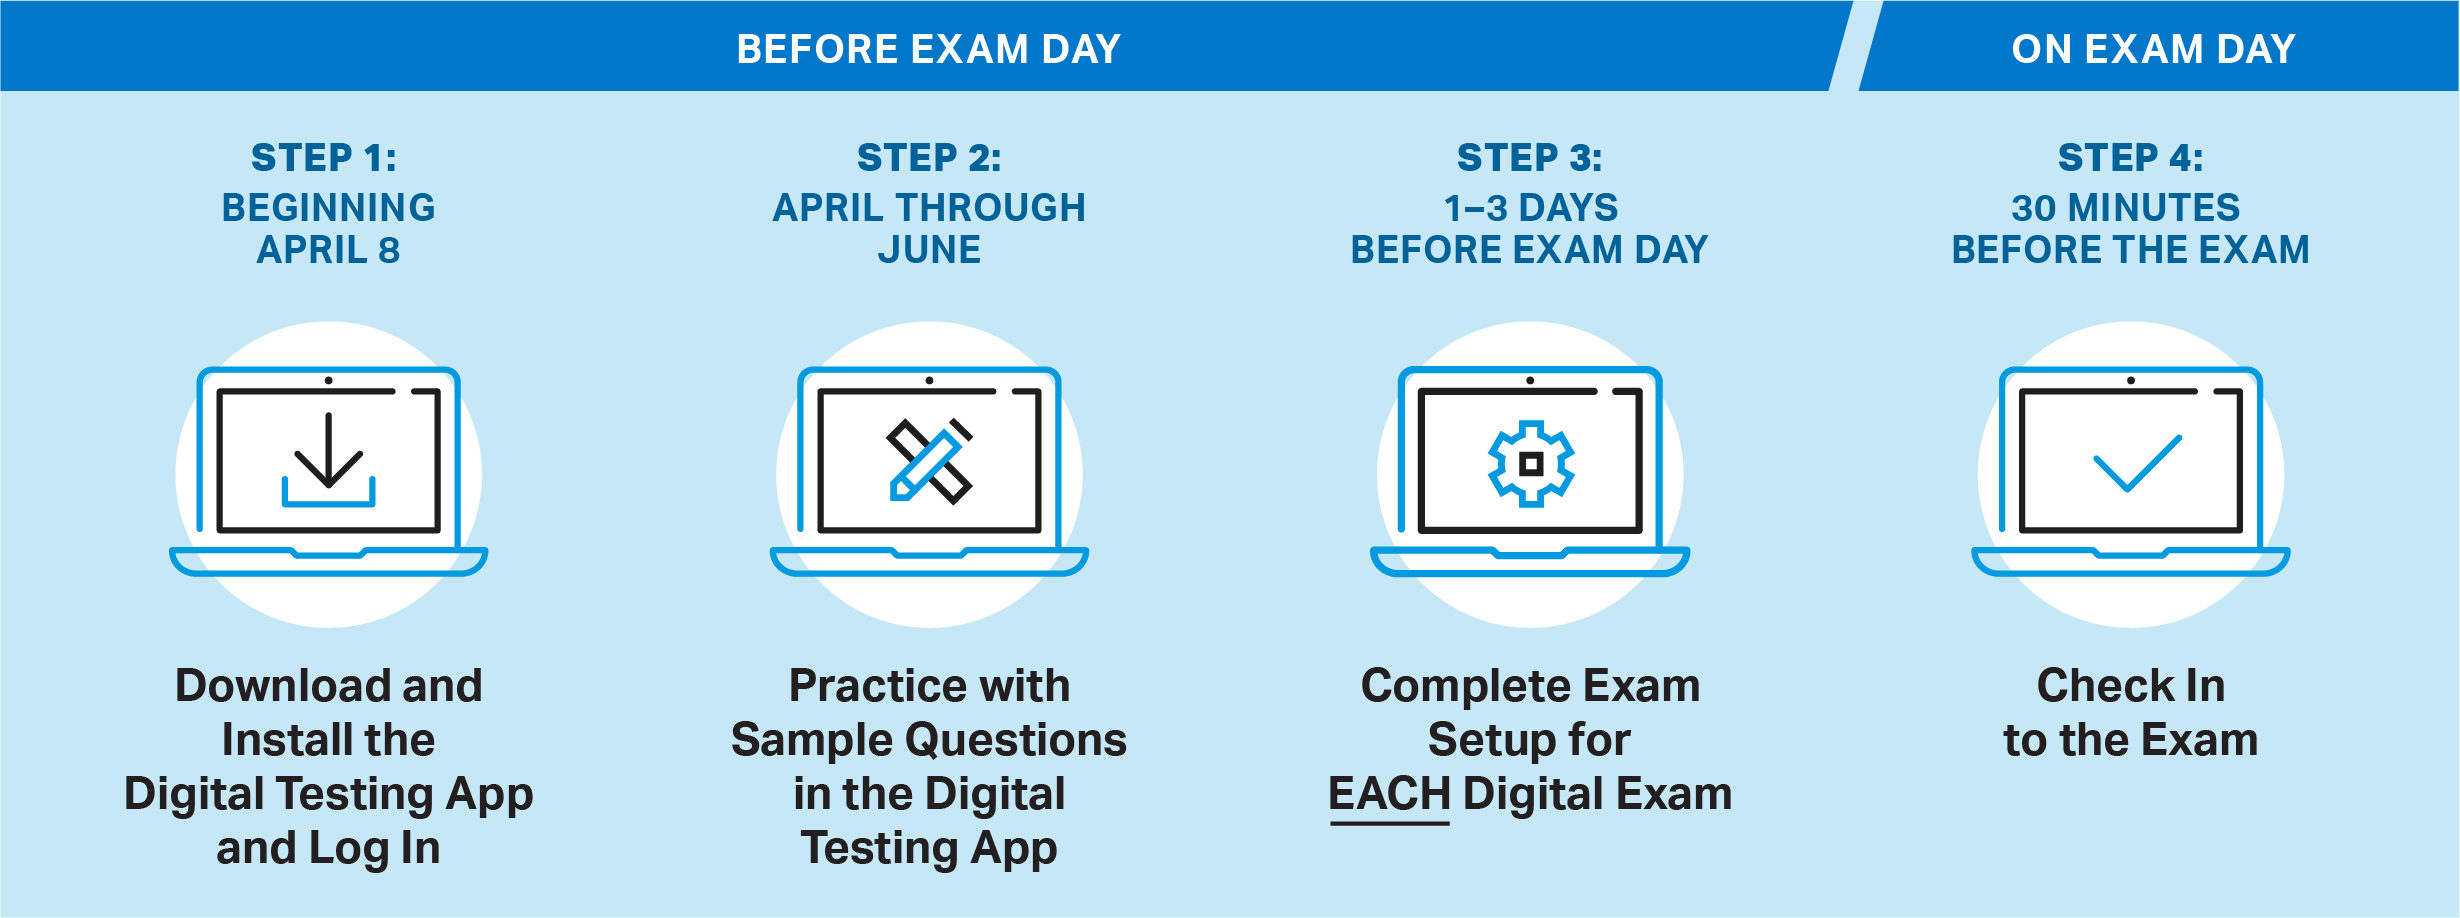 illustration showing timeline for Digital Exam Readiness